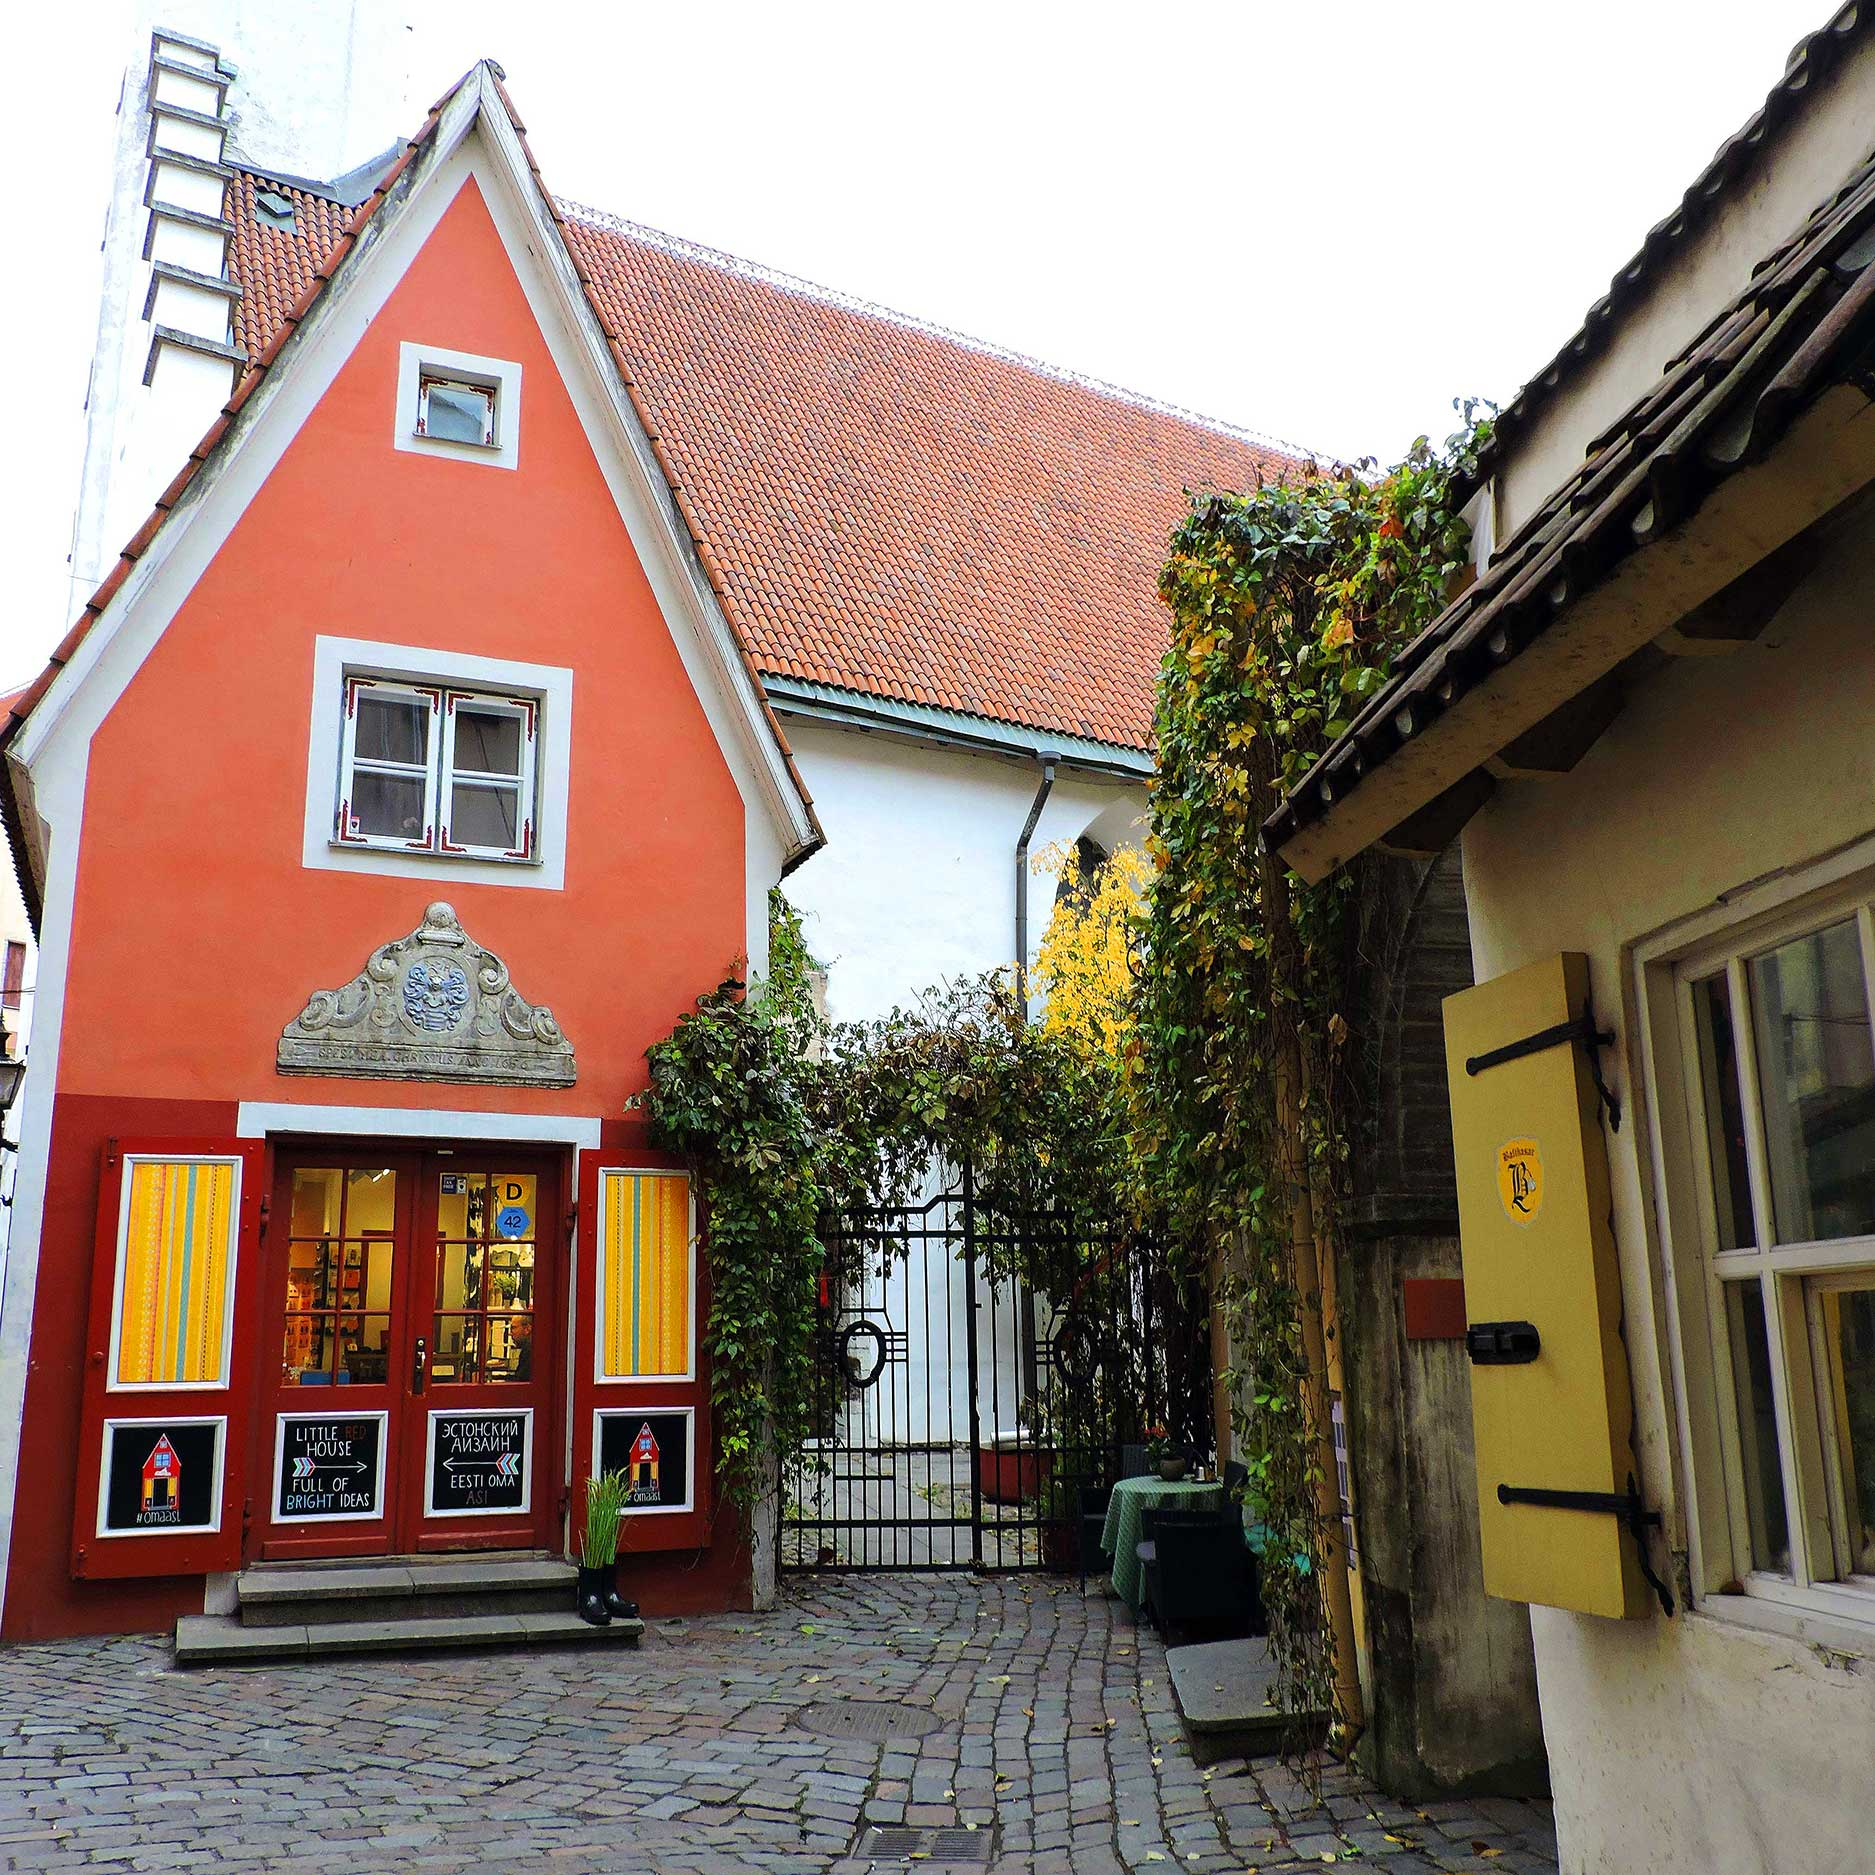 Saiakang Alley in Tallinn, Estonia